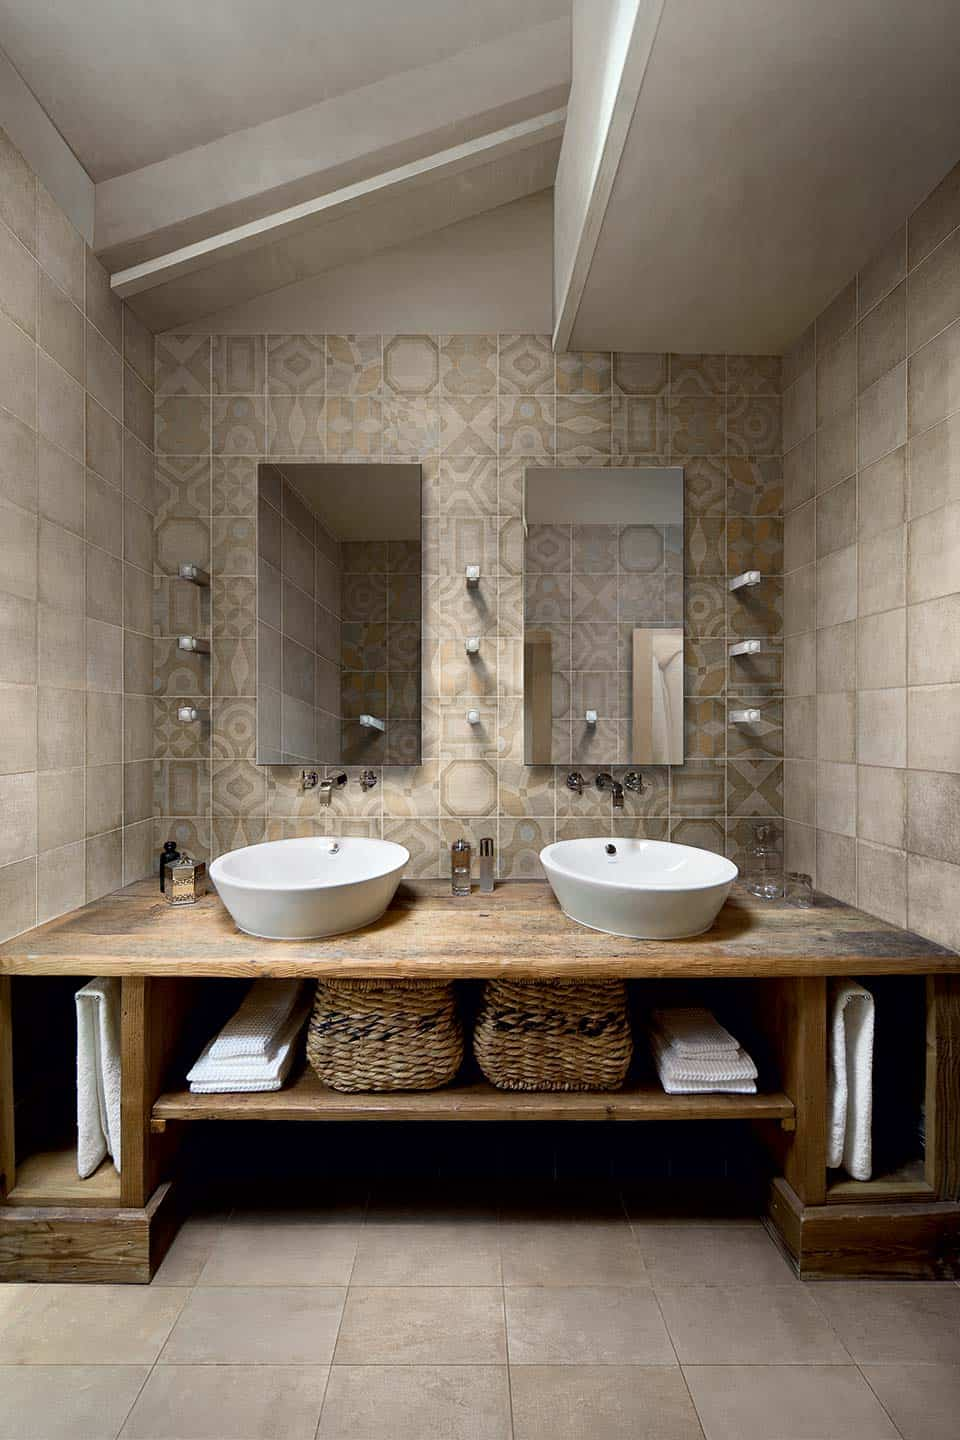 memory-of-cerim-tiles-in-a-bathroom